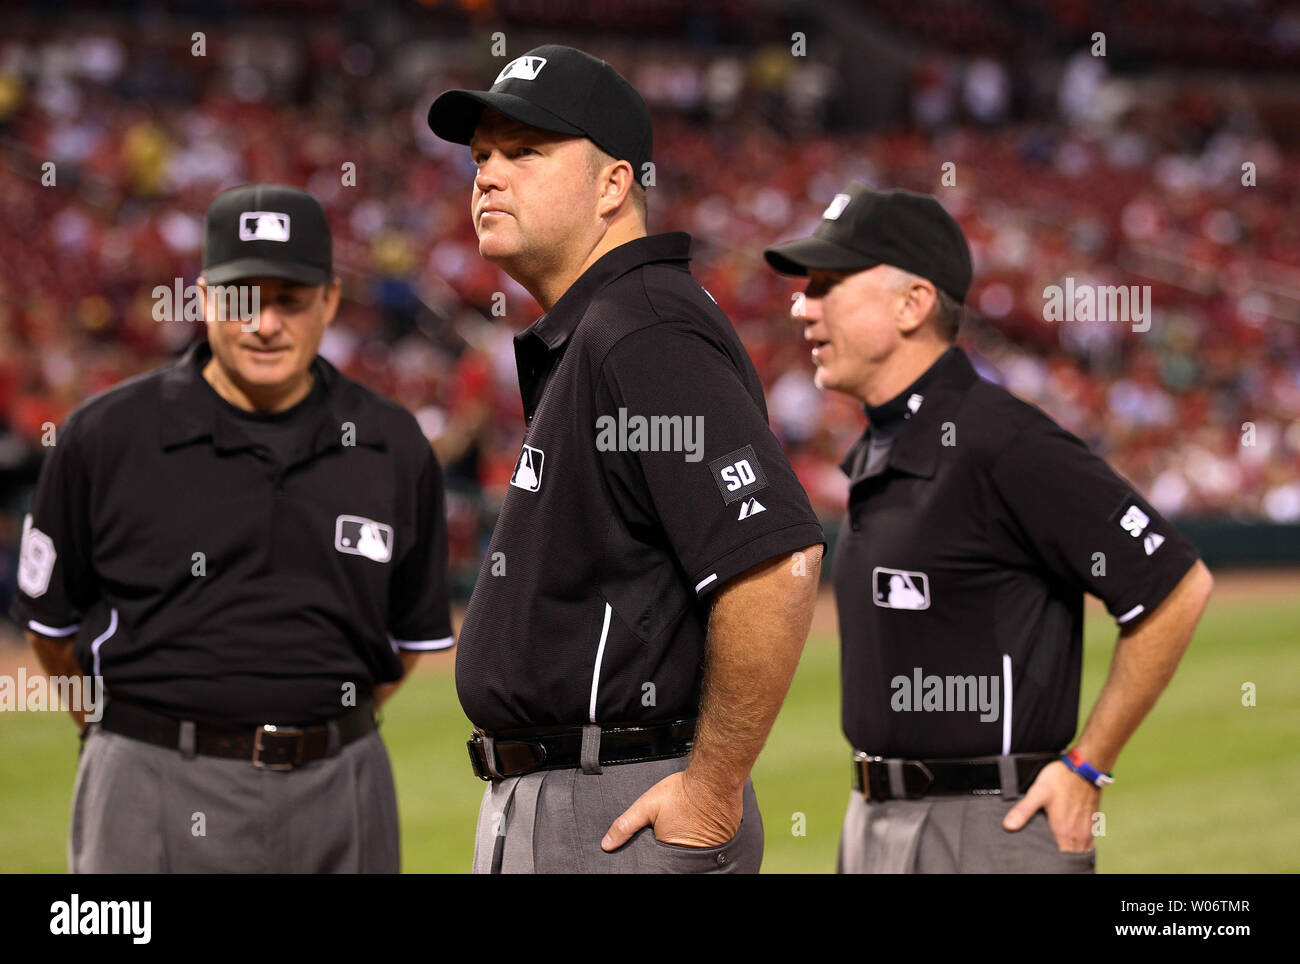 572bb07115a308 Umpires Ron Kulpa (C) Ed Rapuano (L) and Lance Barksdale stand at